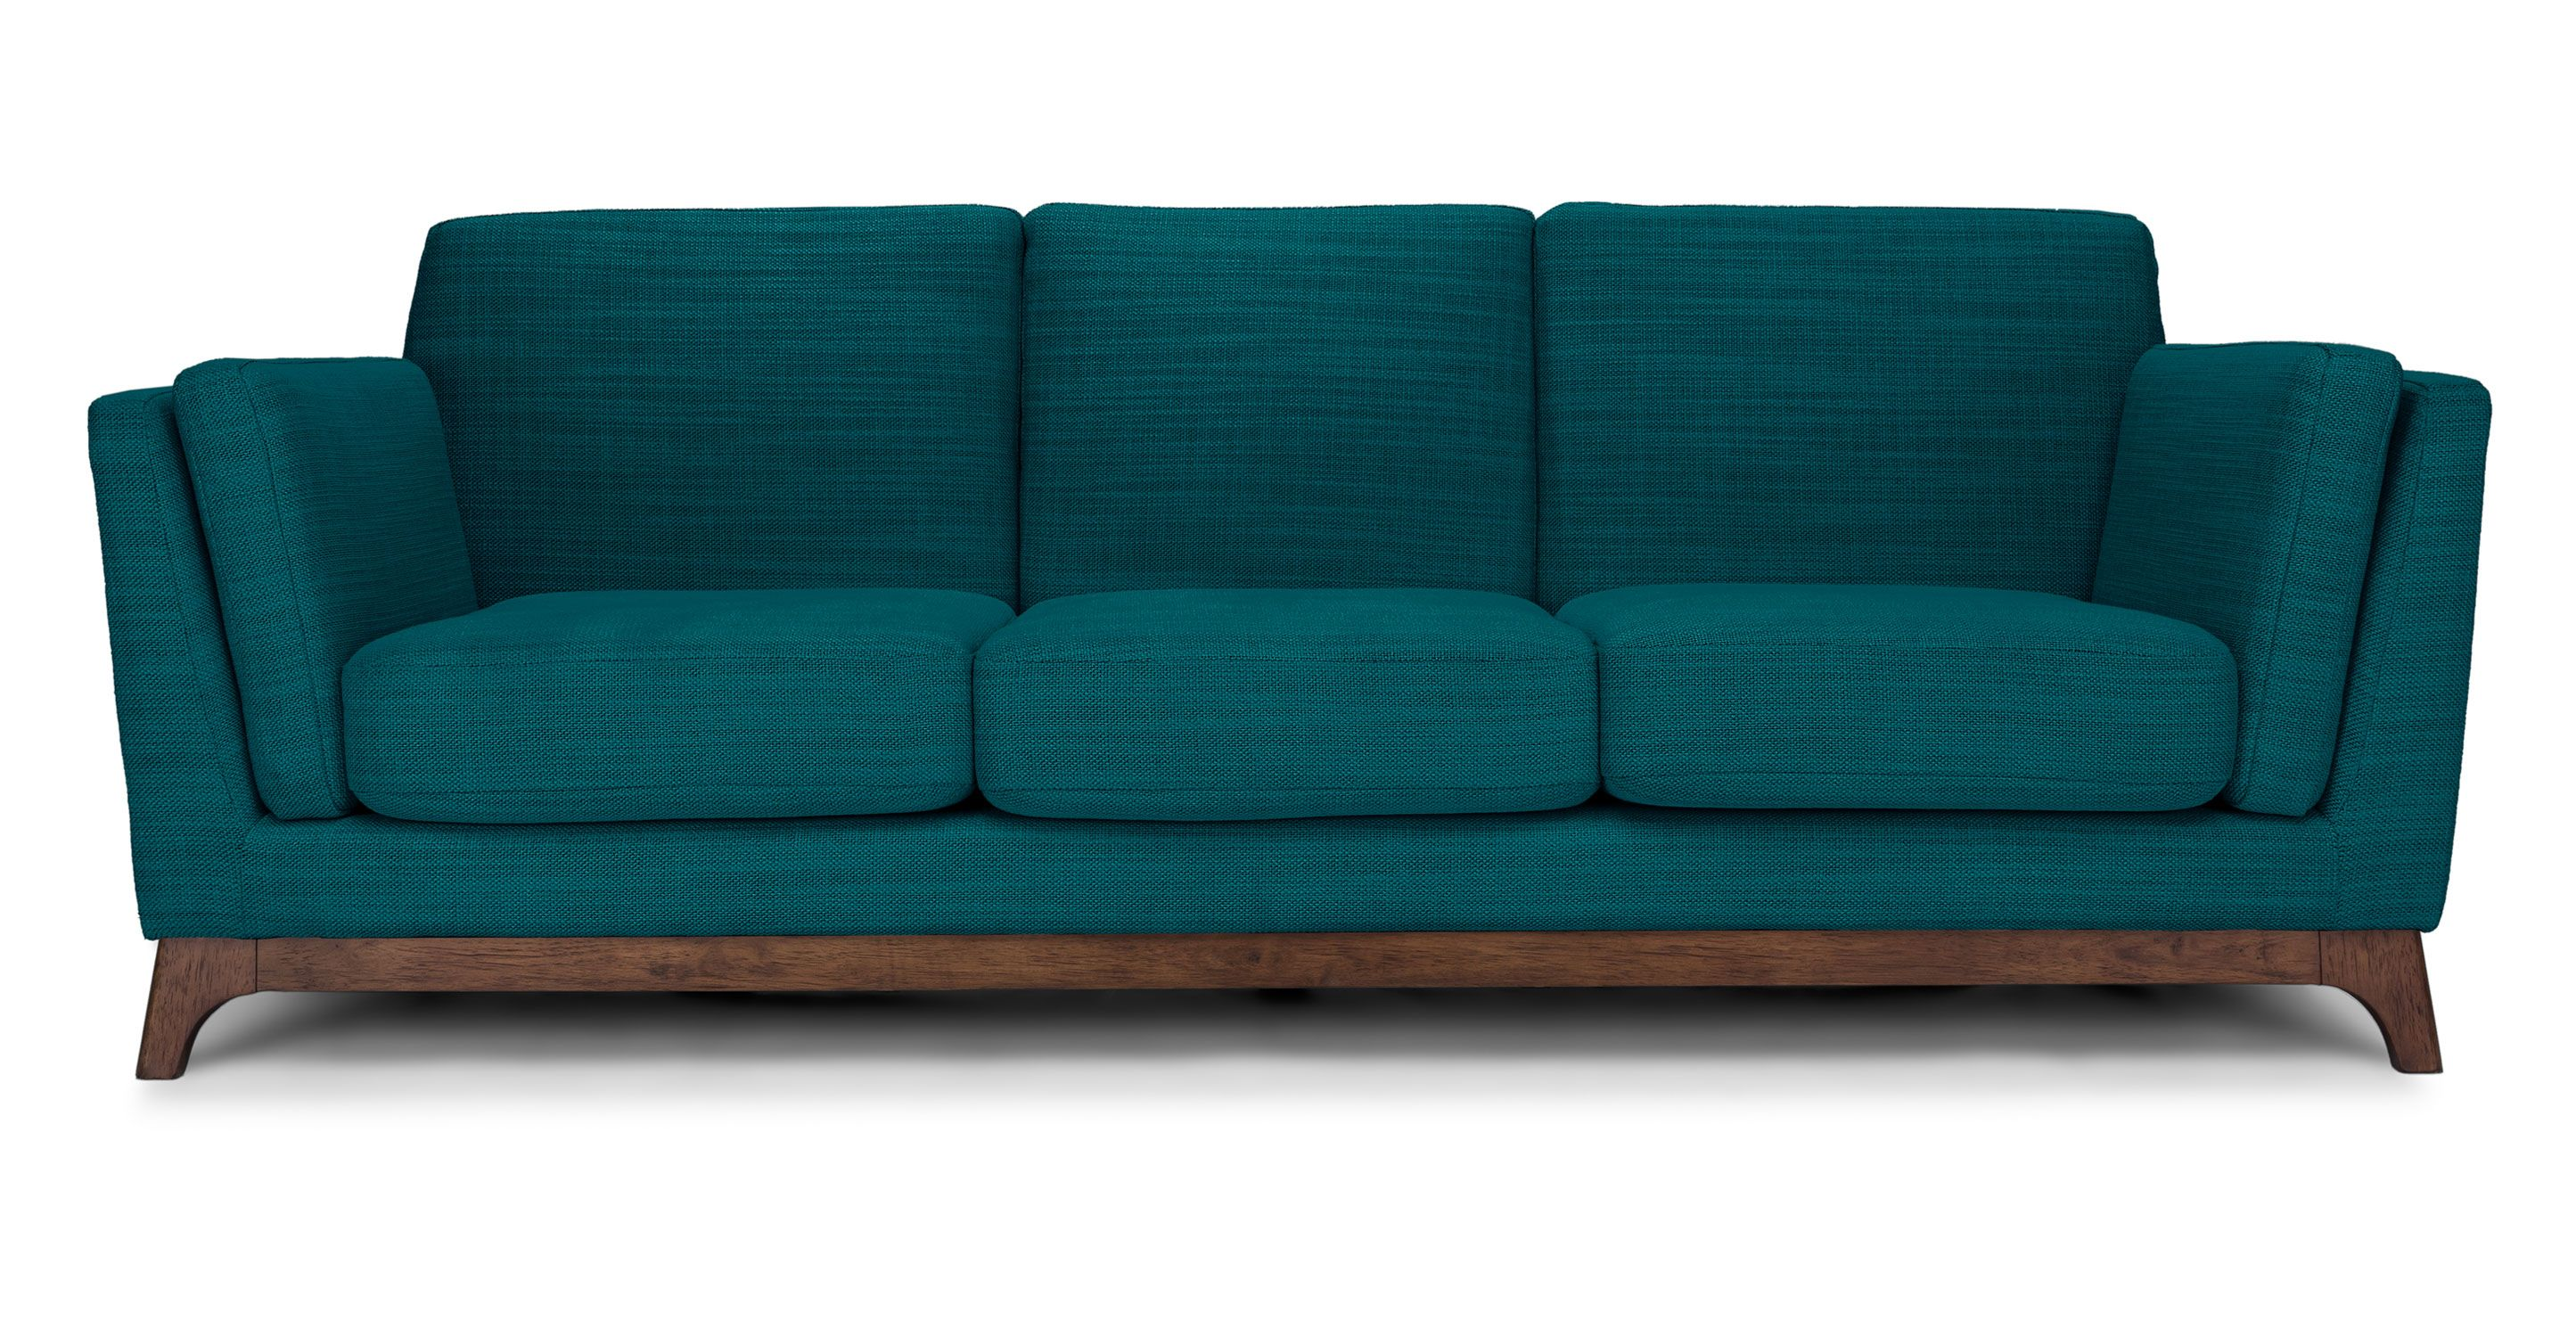 Green Blue Sofa, 3 Seater, Solid Wood Legs | Article Ceni Modern Furniture